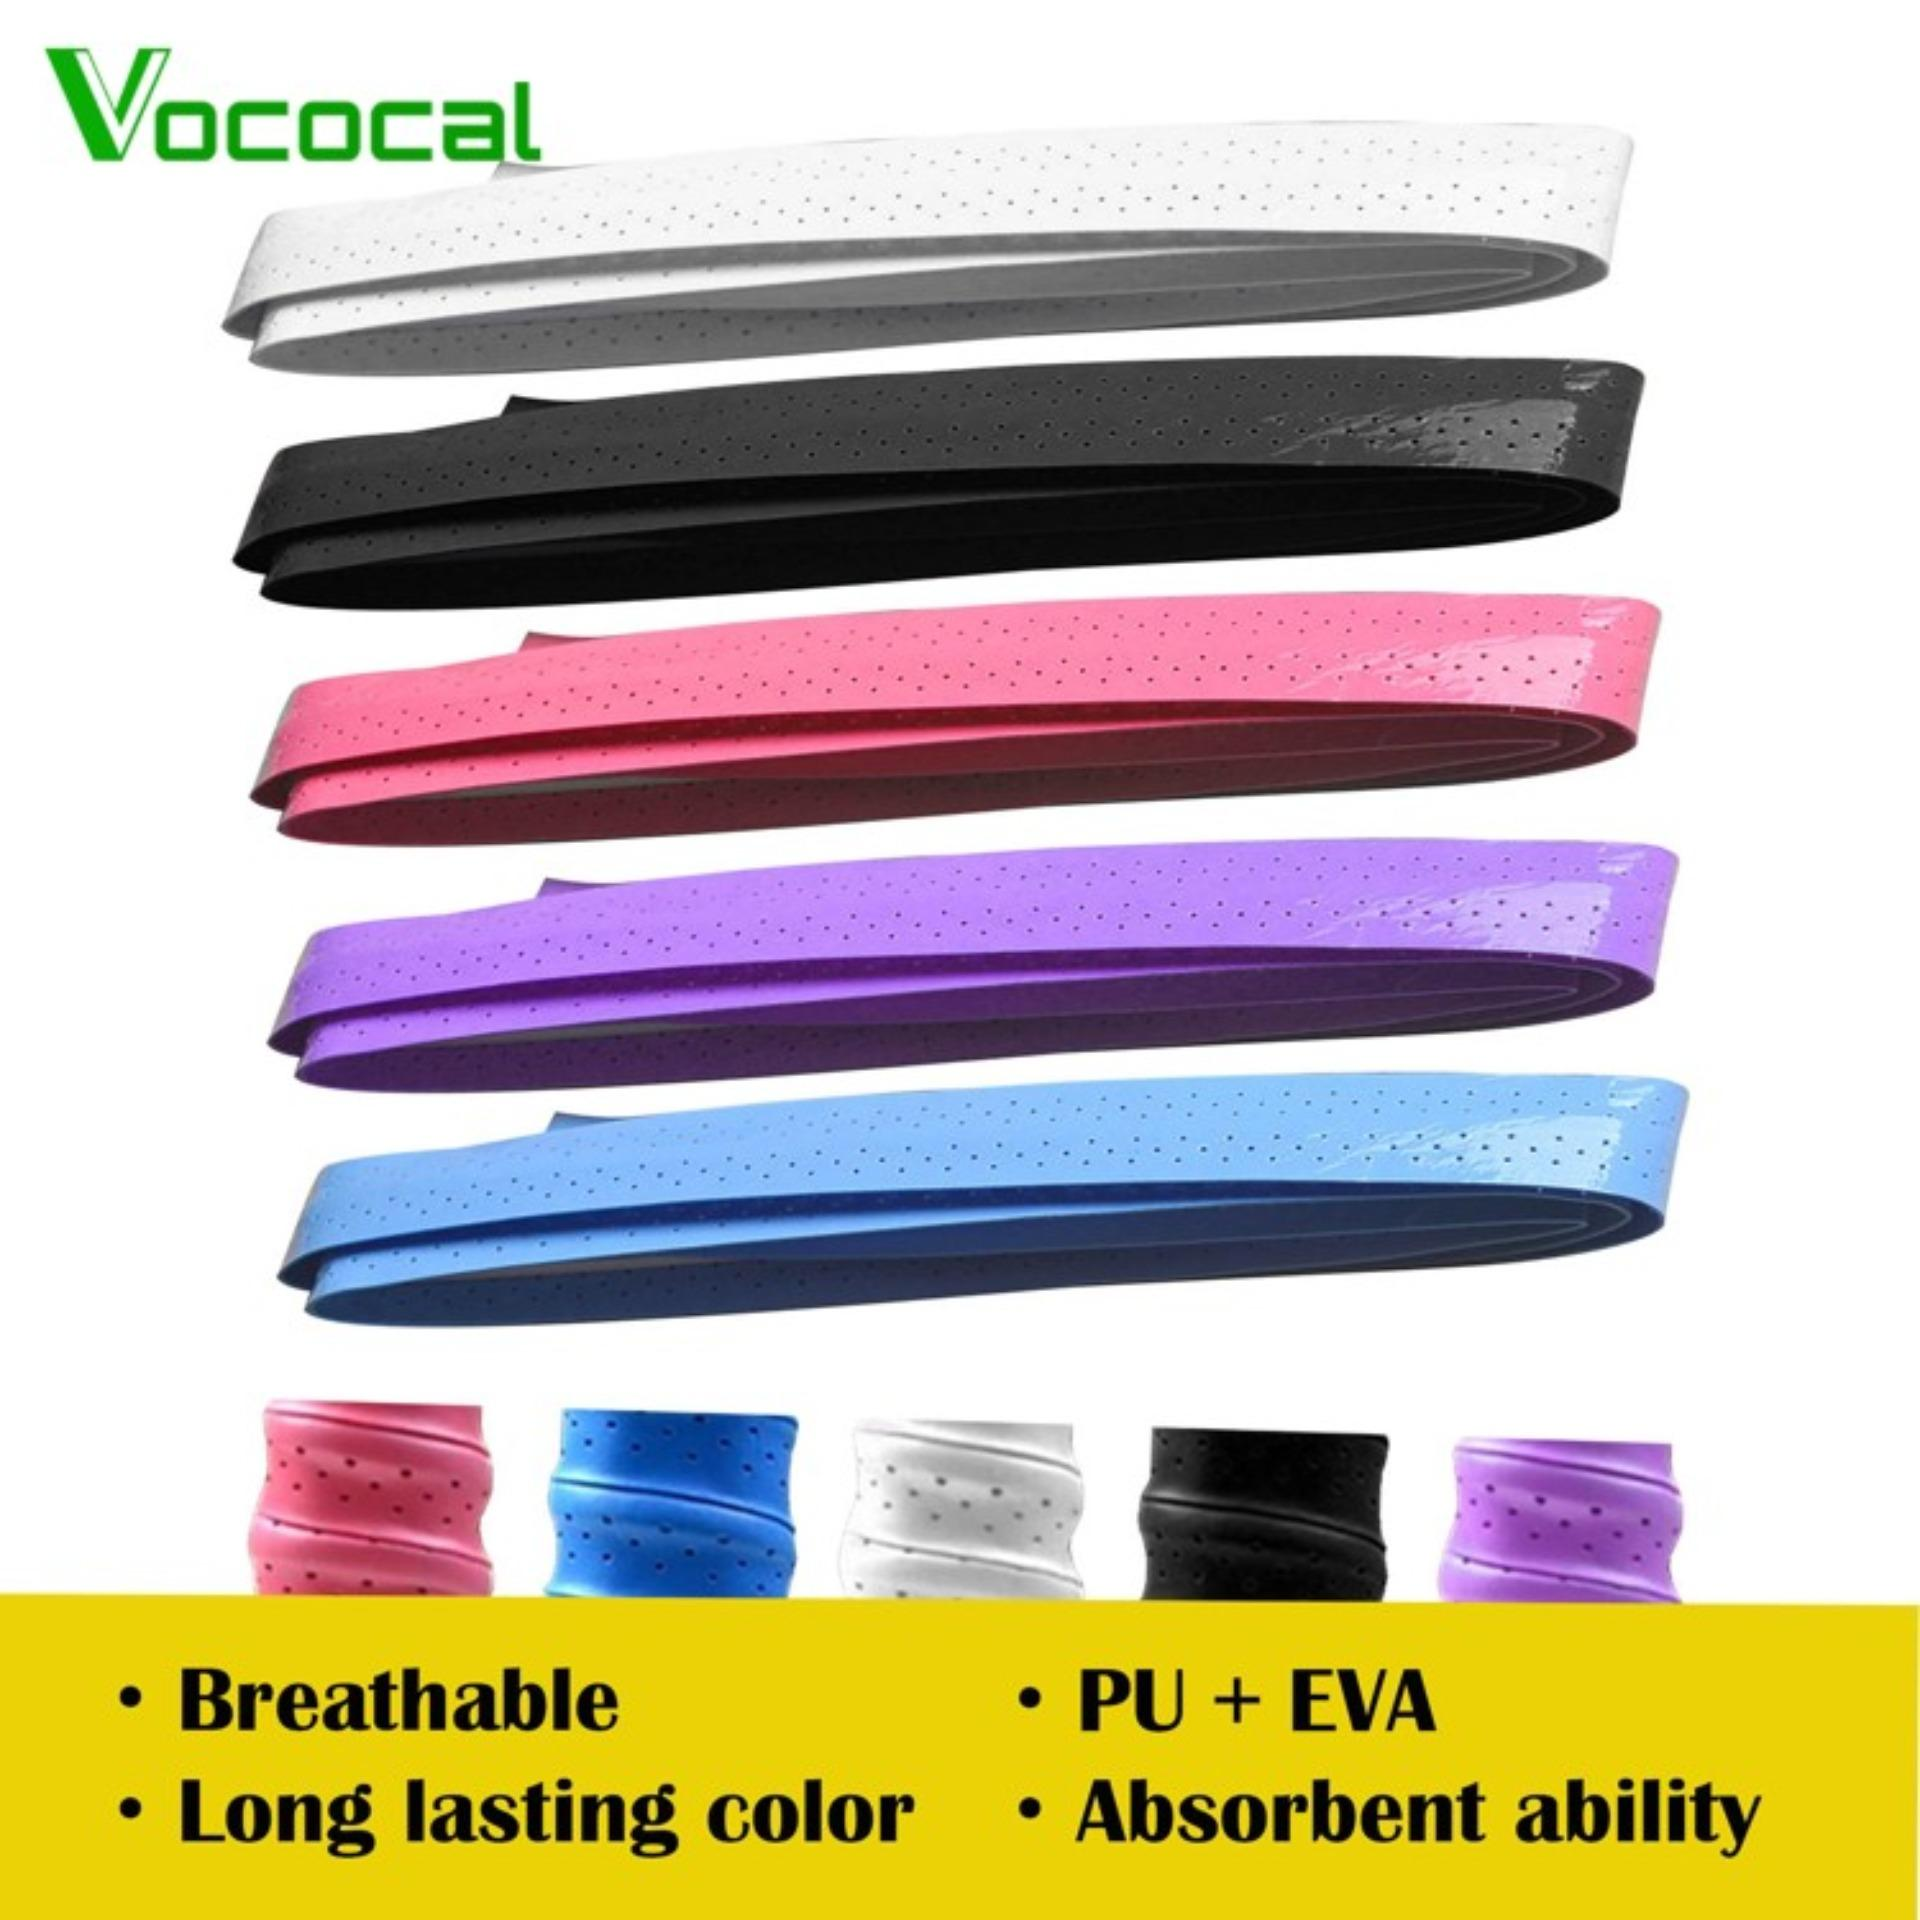 Vococal 5 Pcs Anti-Slip Perforated Sweat Absorbent Tennis Squash Badminton Racket Battledore Overgrip Fishing Rod Bike Bar Grip Tape (in Stock) By Vococal Shop.